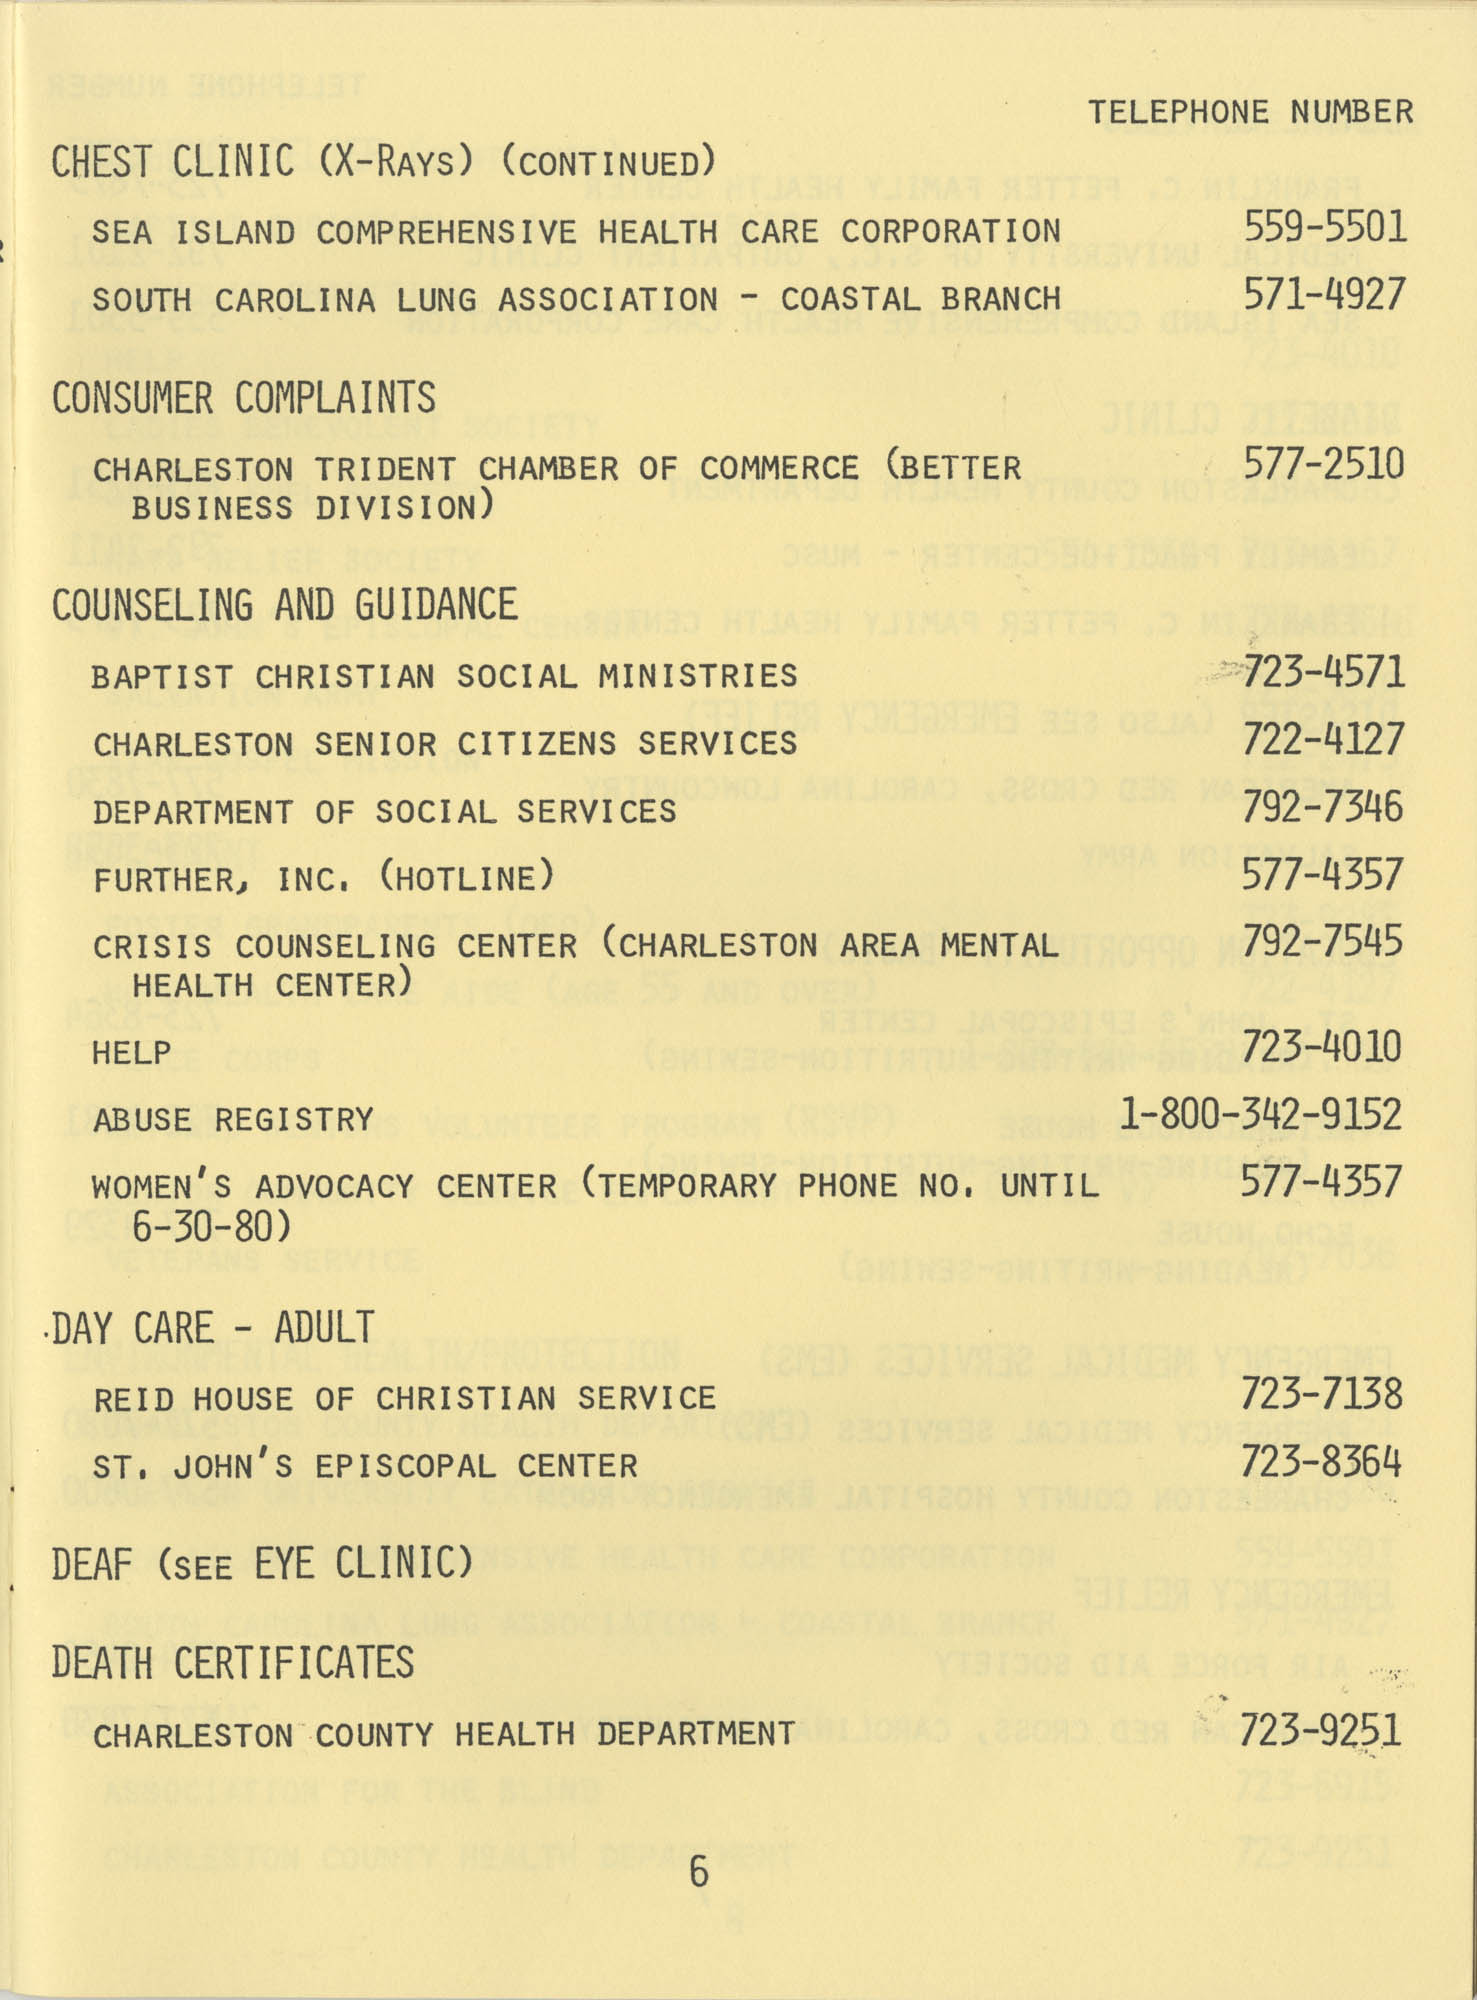 Telephone Line to Care for the Elderly, Page 6